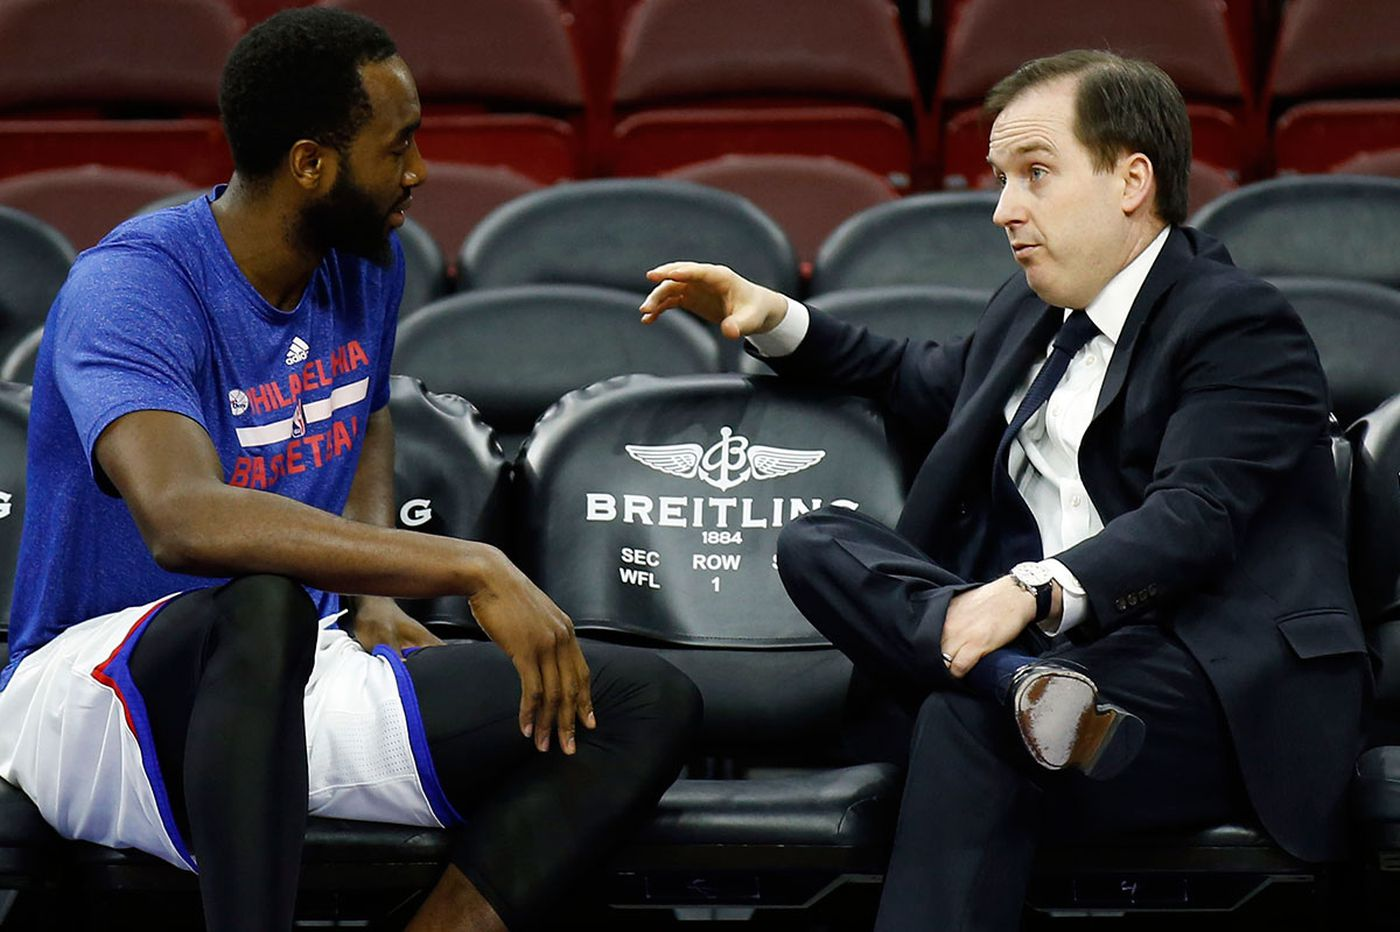 Ford: Hinkie likes to color outside the lines; will it work?